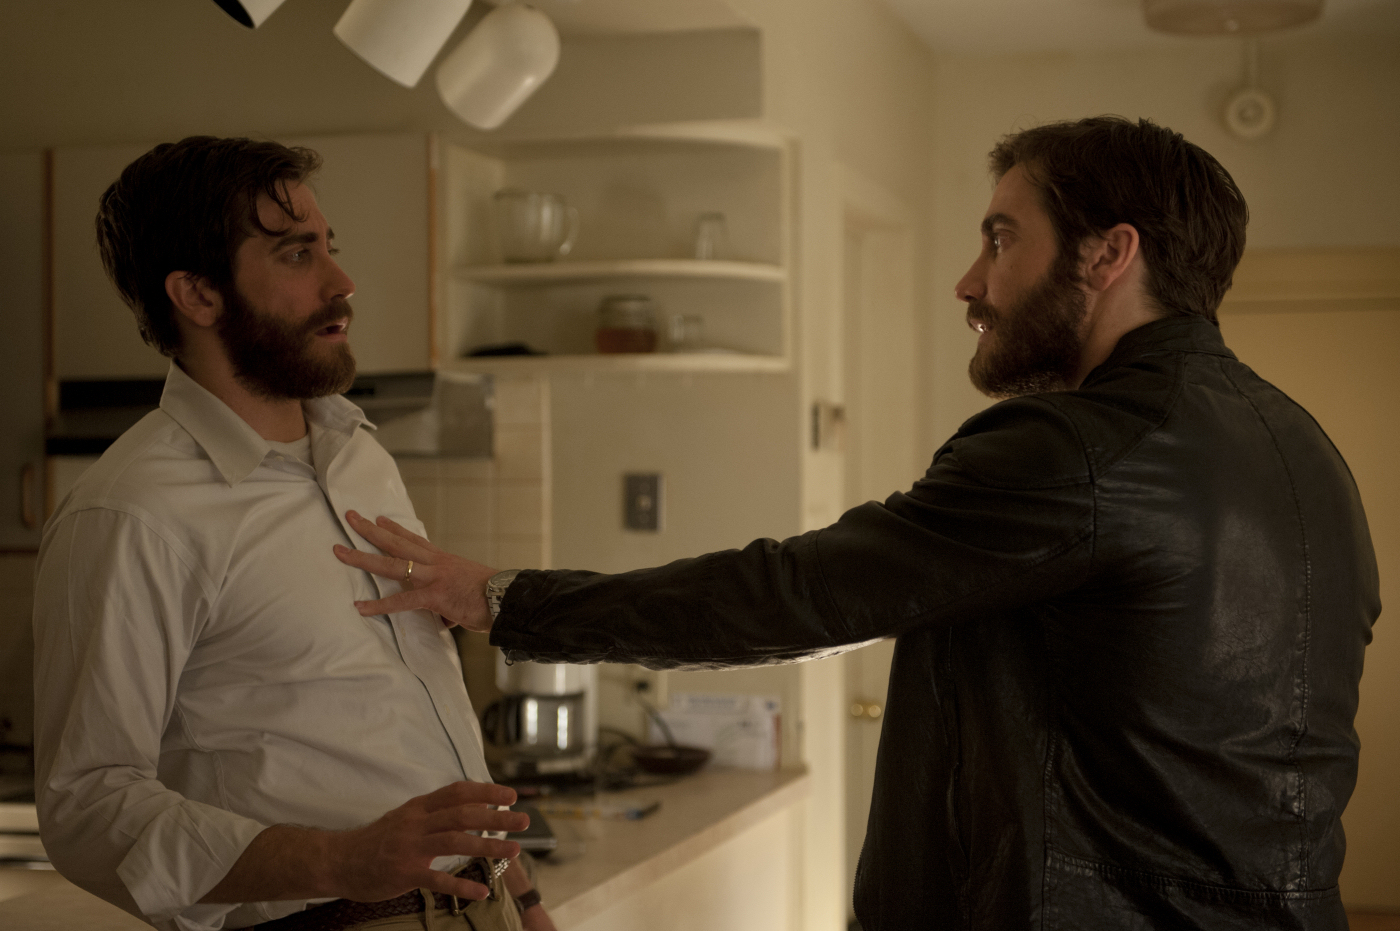 Movie Review: Jake Gyllenhaal Is Up Against Himself in 'Enemy'